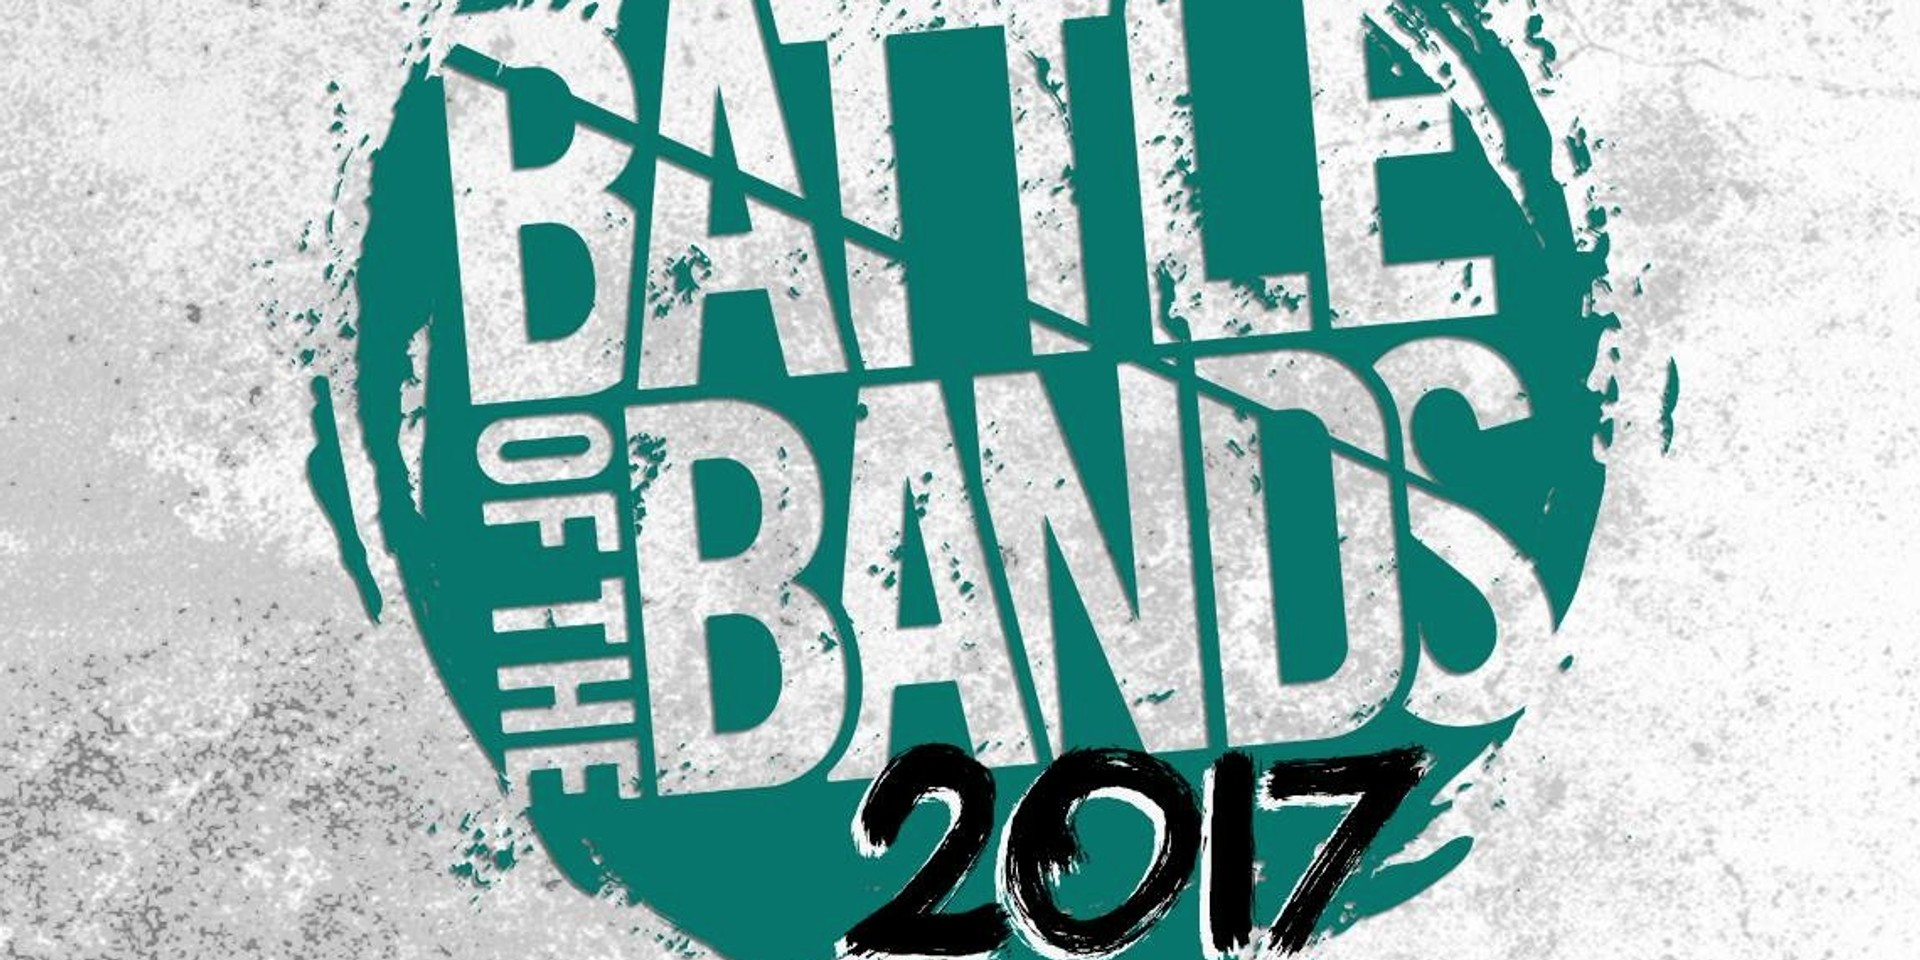 Yellow Room Music announces Top 10 finalists for this year's Battle of the Bands